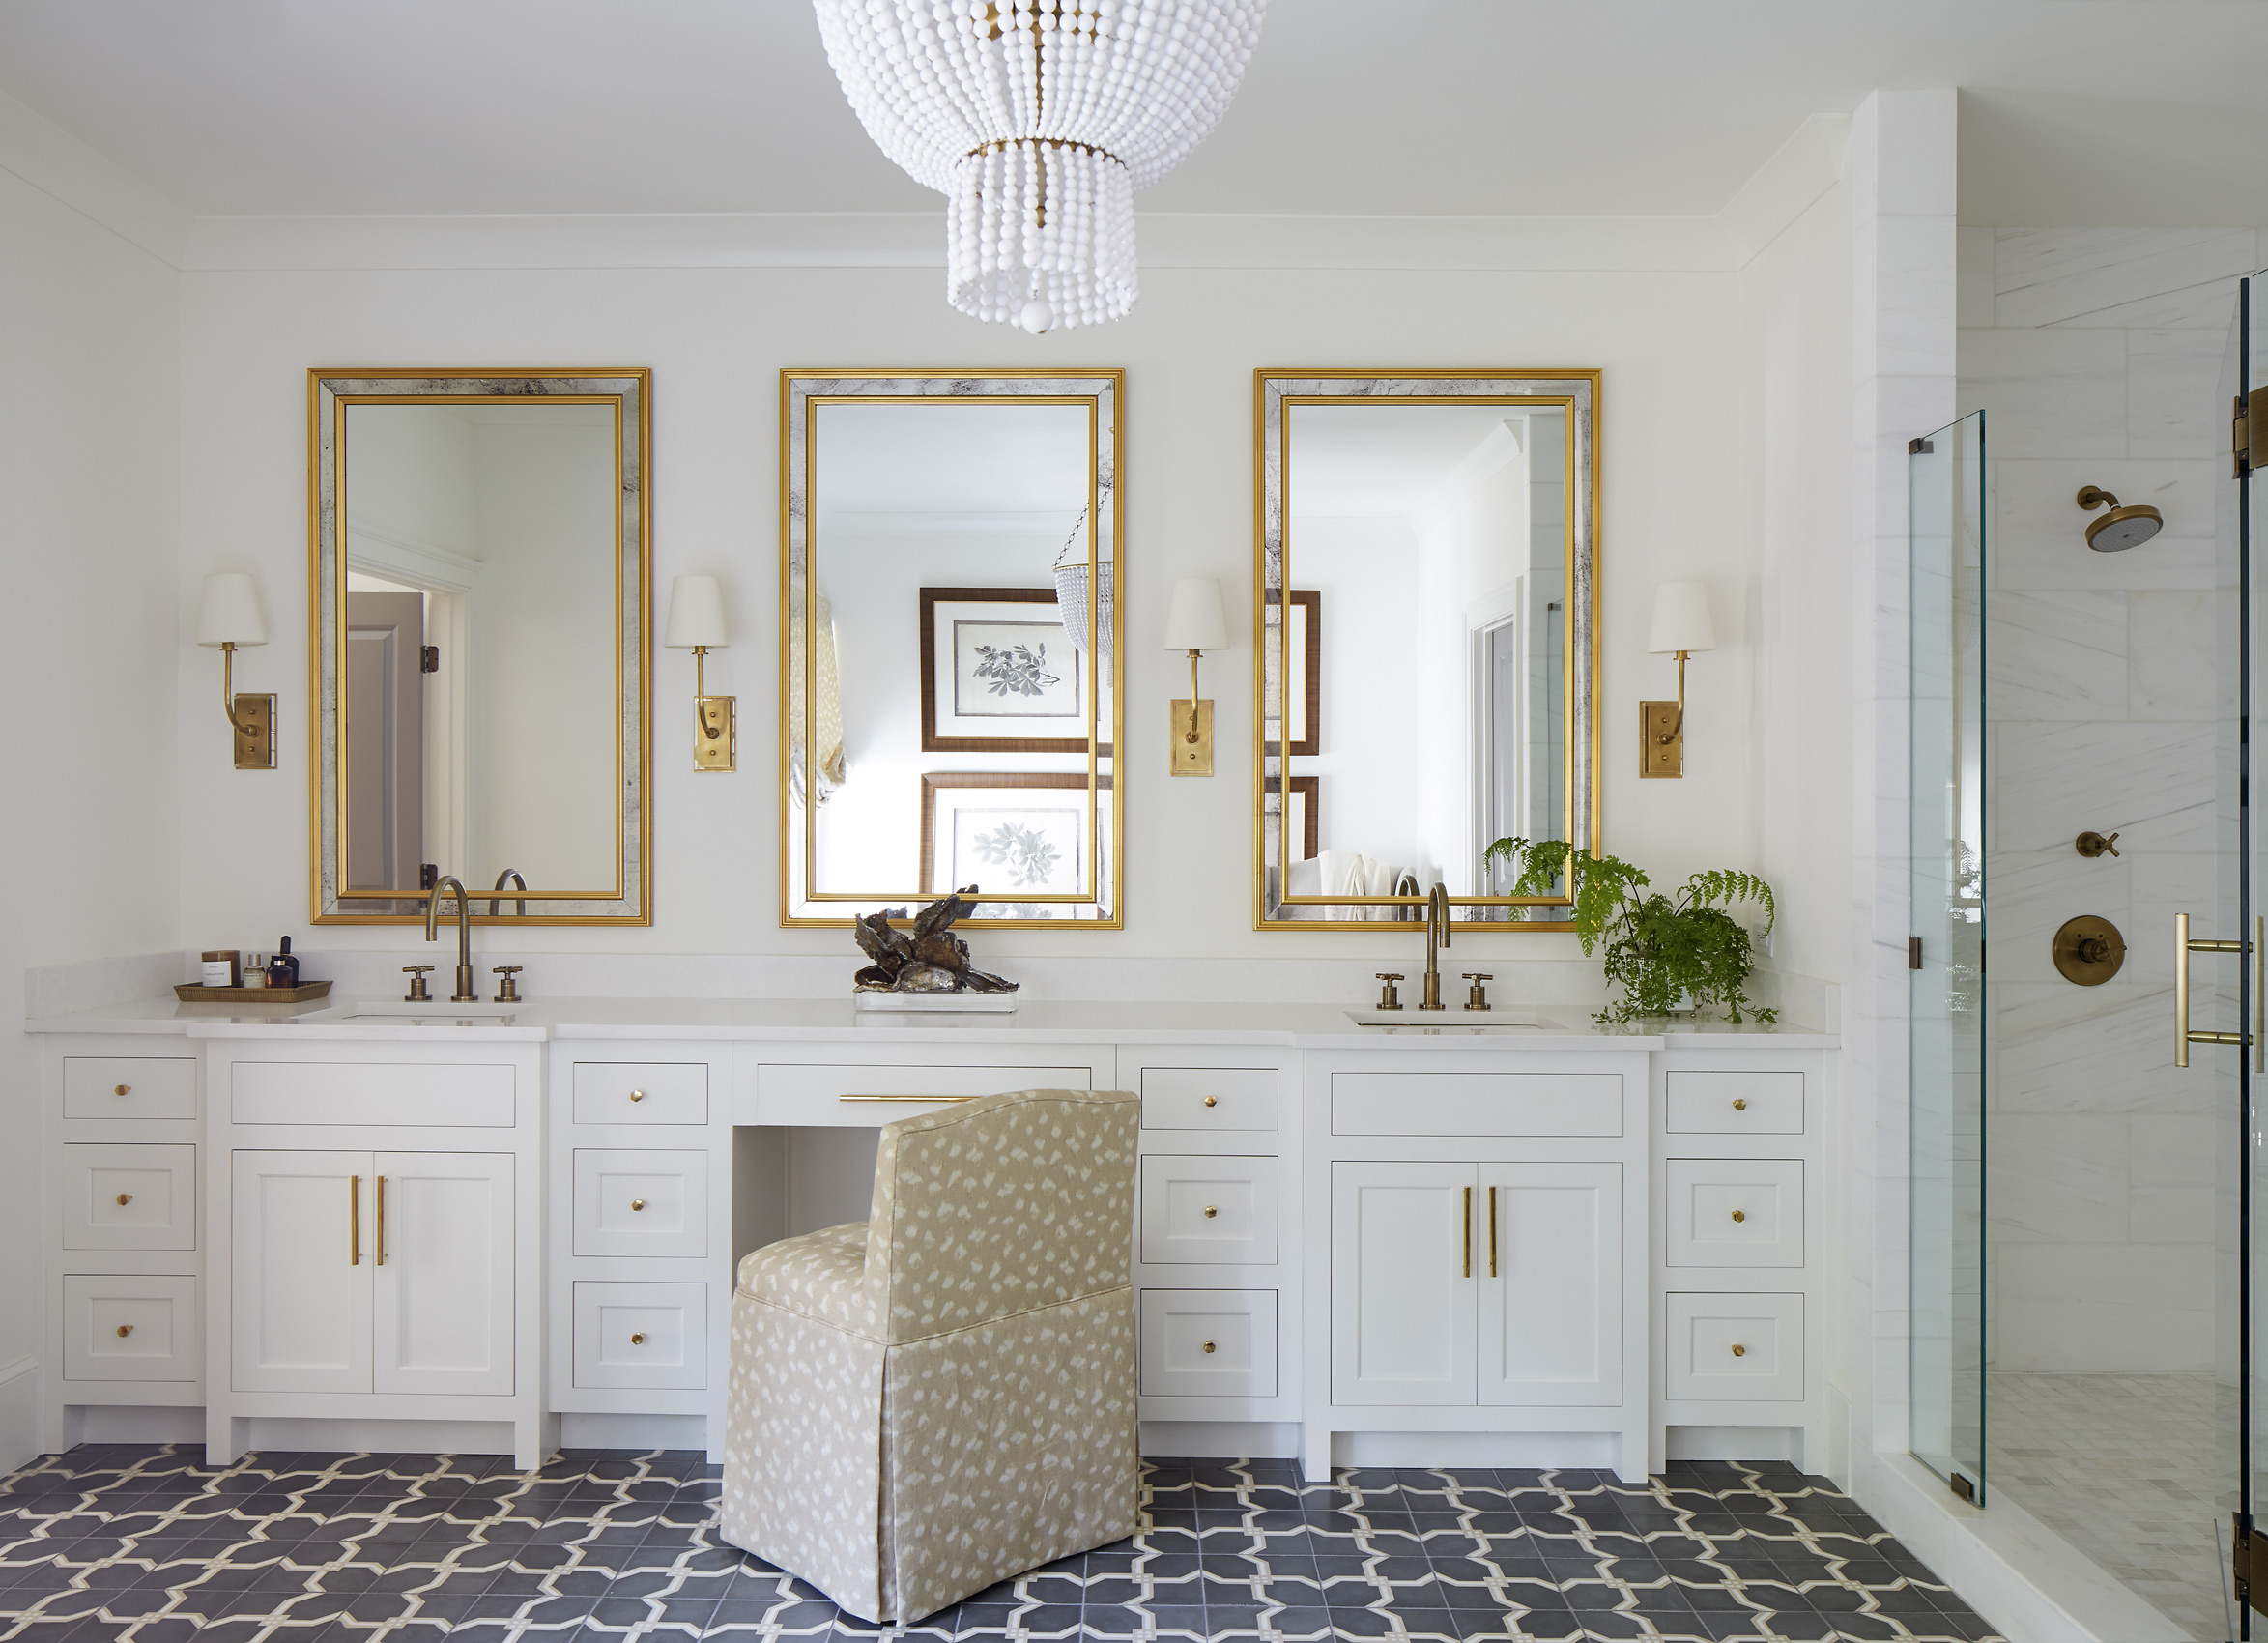 Shayelyn Woodbery Interiors uses turkish tile in a master bath, Mali Azima photography.